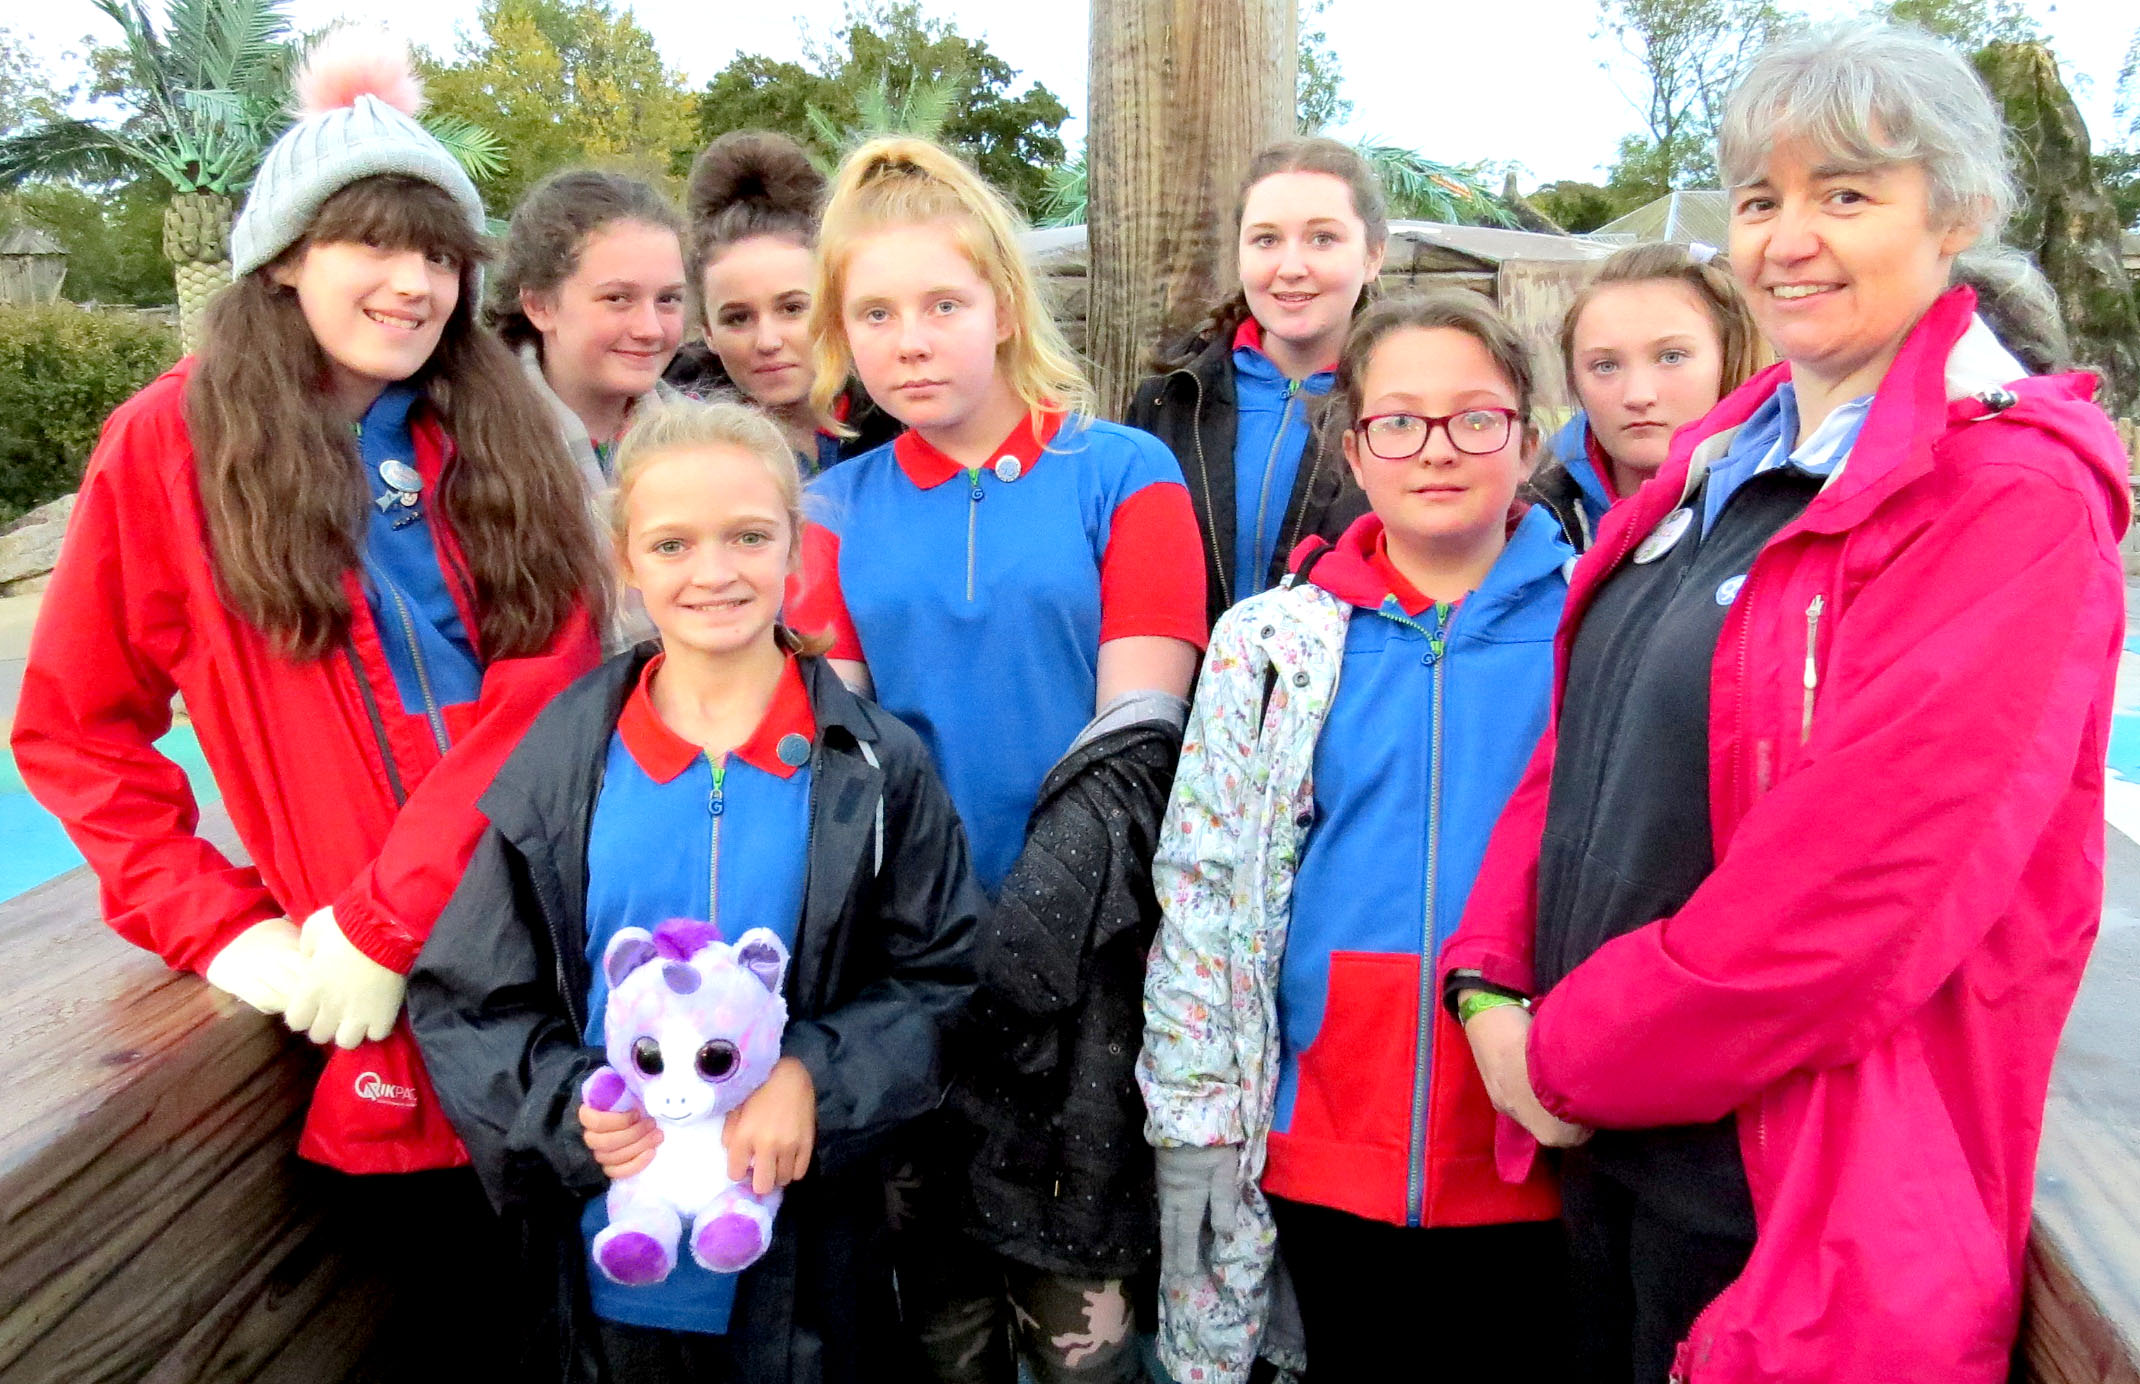 Aycliffe Rangers & Guides at Adventure Weekend